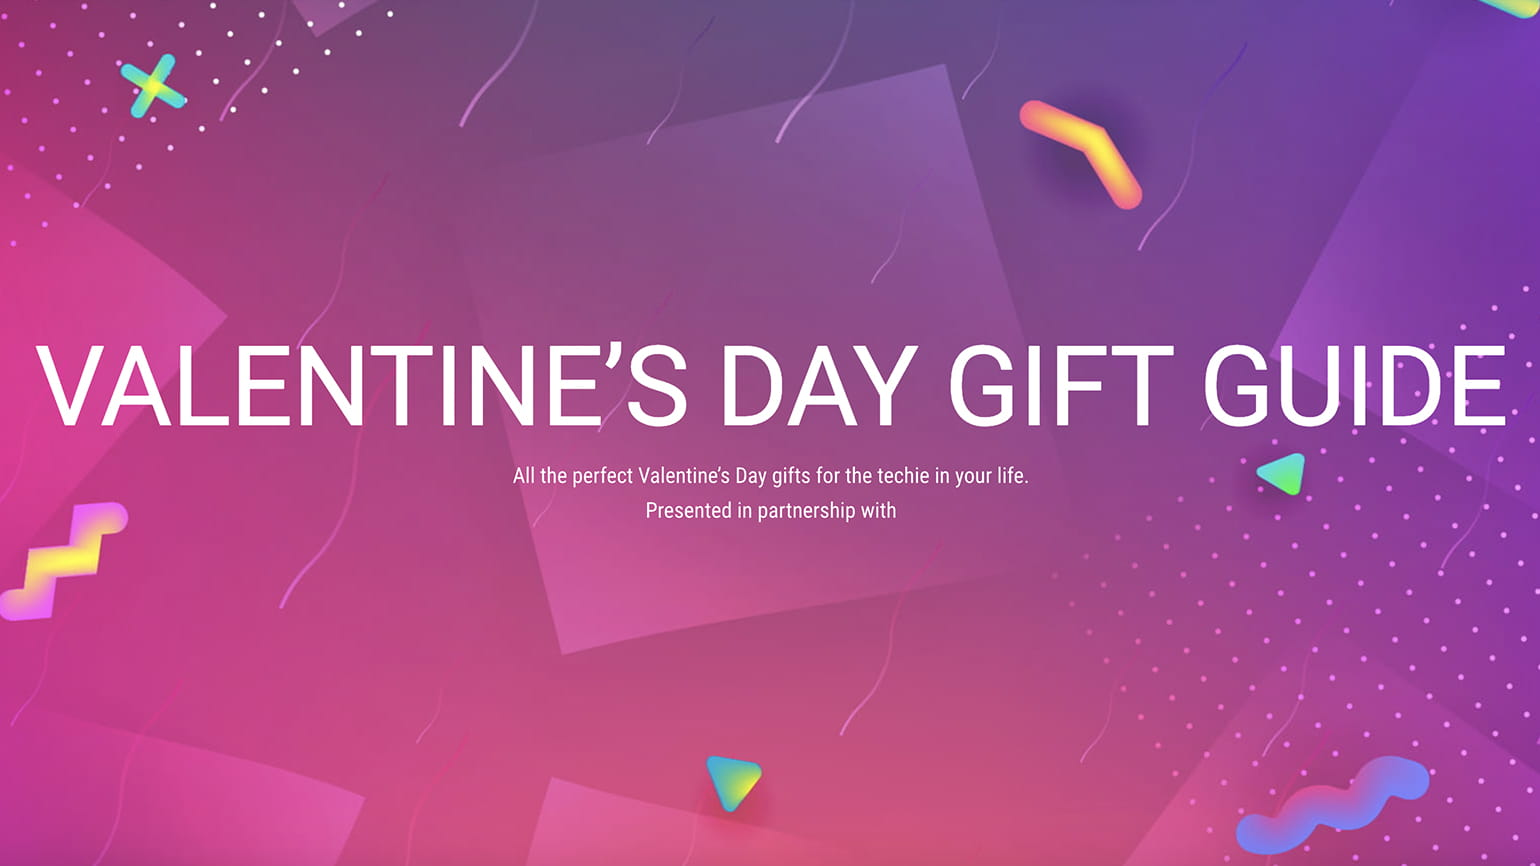 CNET Valentine's Day Gift Guide - B2C Gift Guide